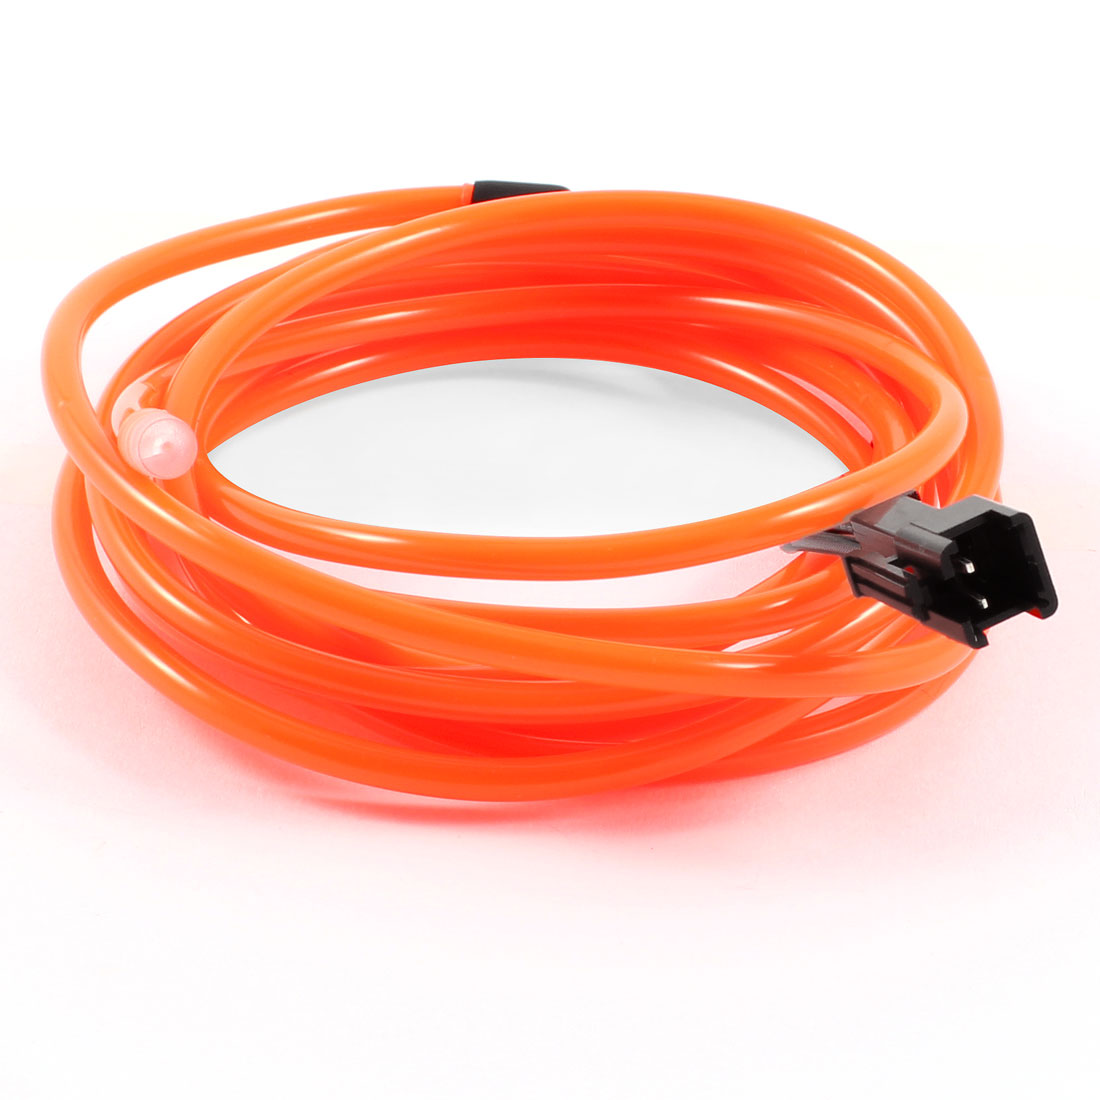 2M Long 3.2mm Dia Orange Flexible EL Wire Neon Glow Strip Light Rope Line